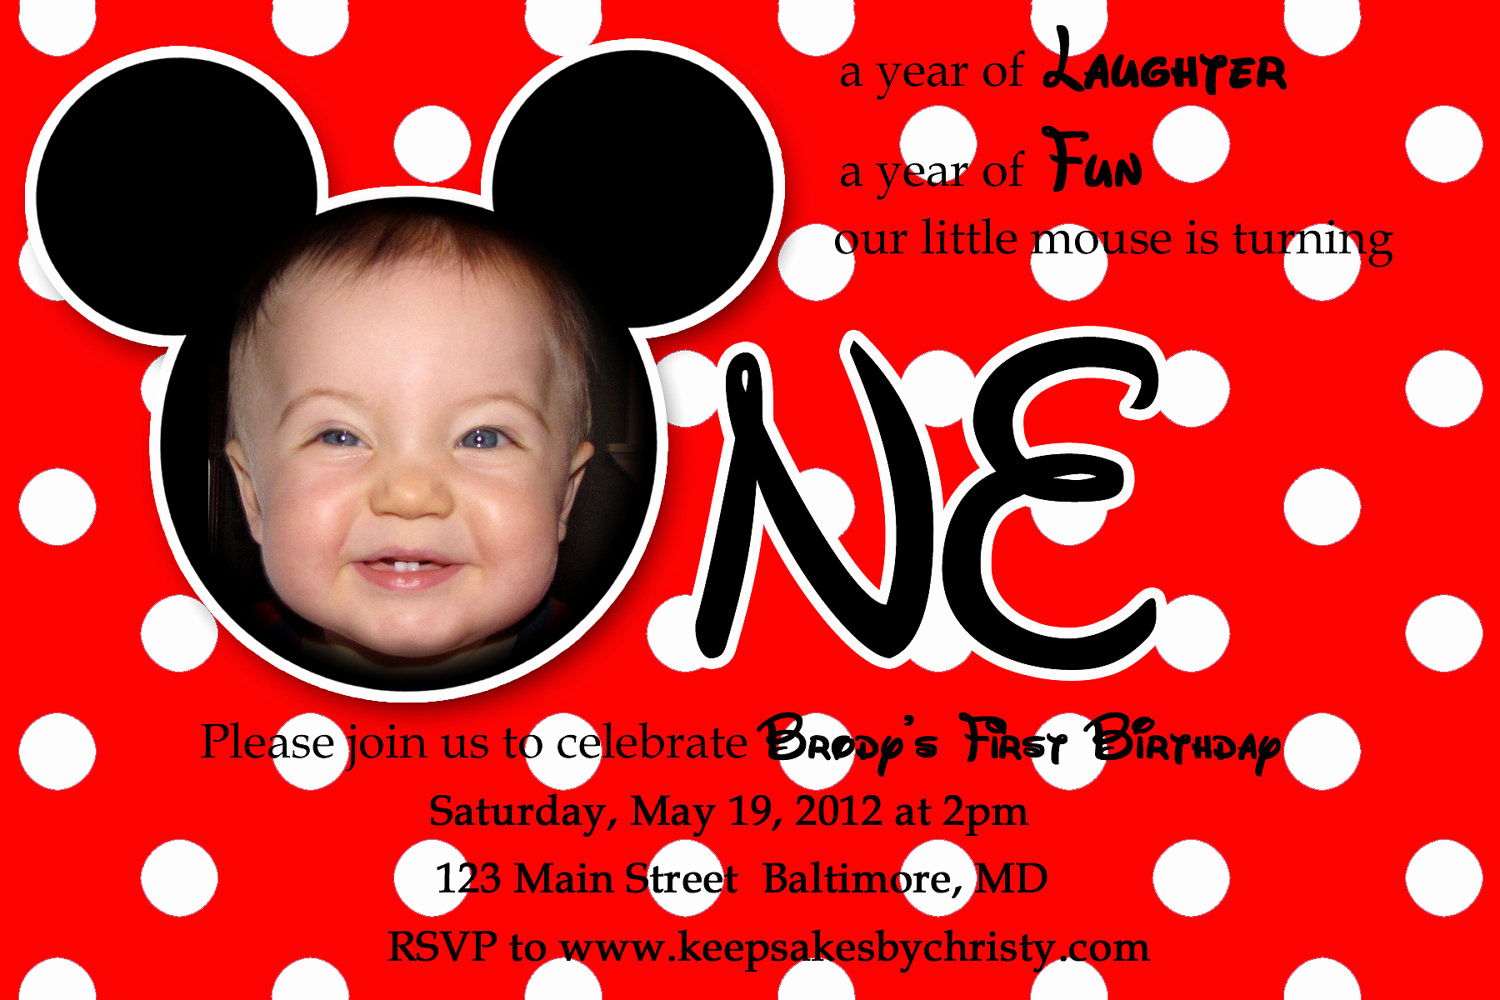 1st Birthday Invitation Ideas Luxury First Birthday Party Invitation Ideas – Bagvania Free